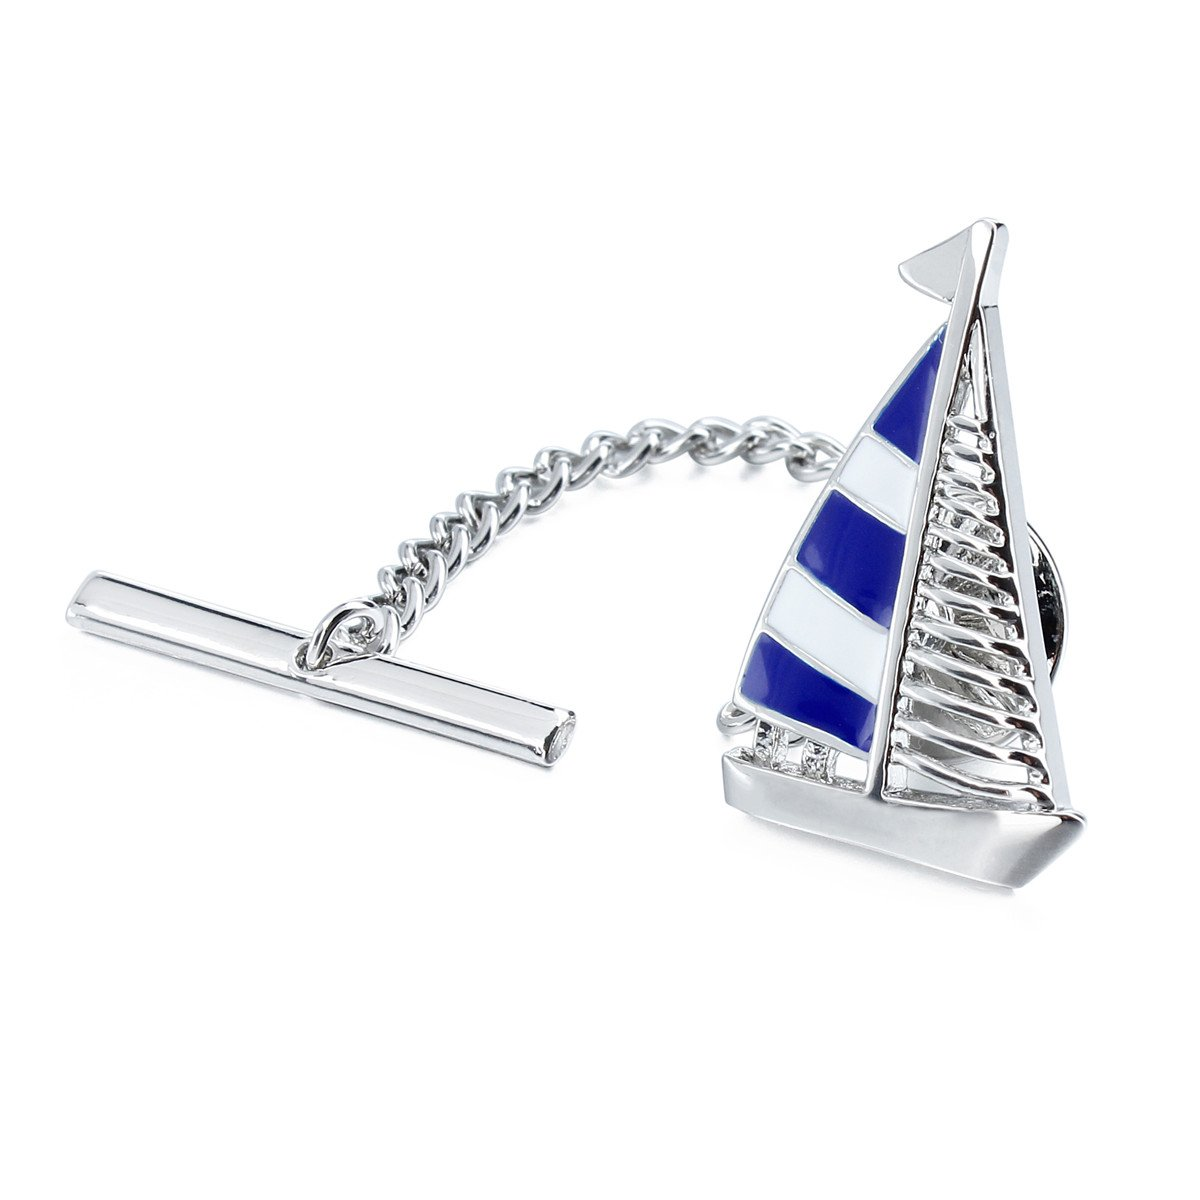 HAWSON Blue Tie Clip Tie Tack with Clucth Back Wedding Party Accessories - Sailing Boat Shape by HAWSON (Image #1)